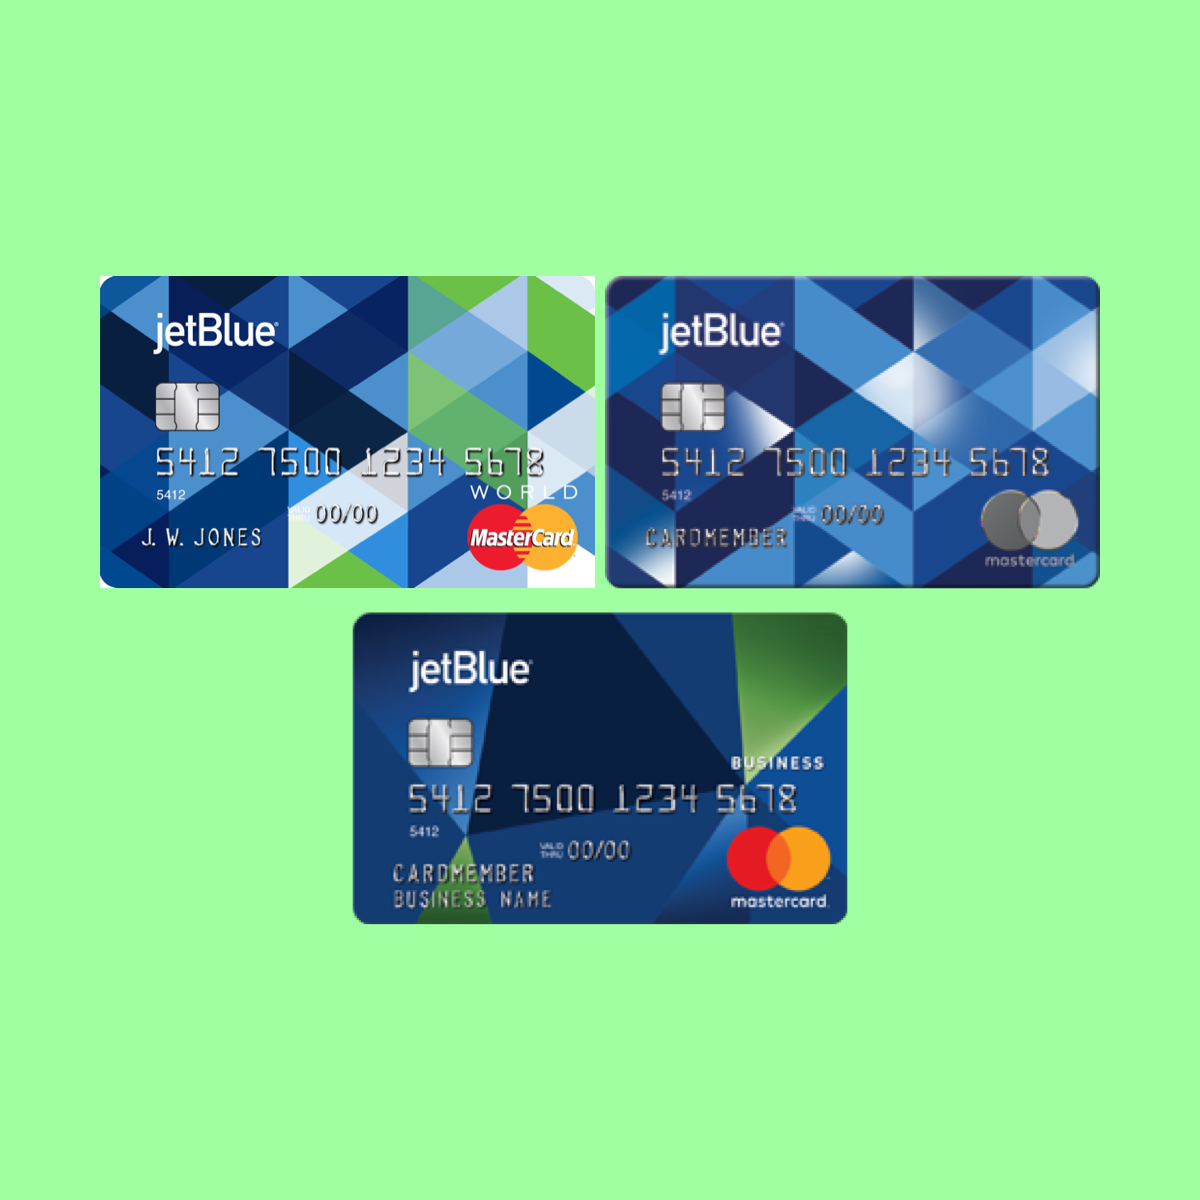 Compare Jetblue Credit Cards By Spend The Point Calculator Business Credit Cards Compare Cards Best Credit Cards